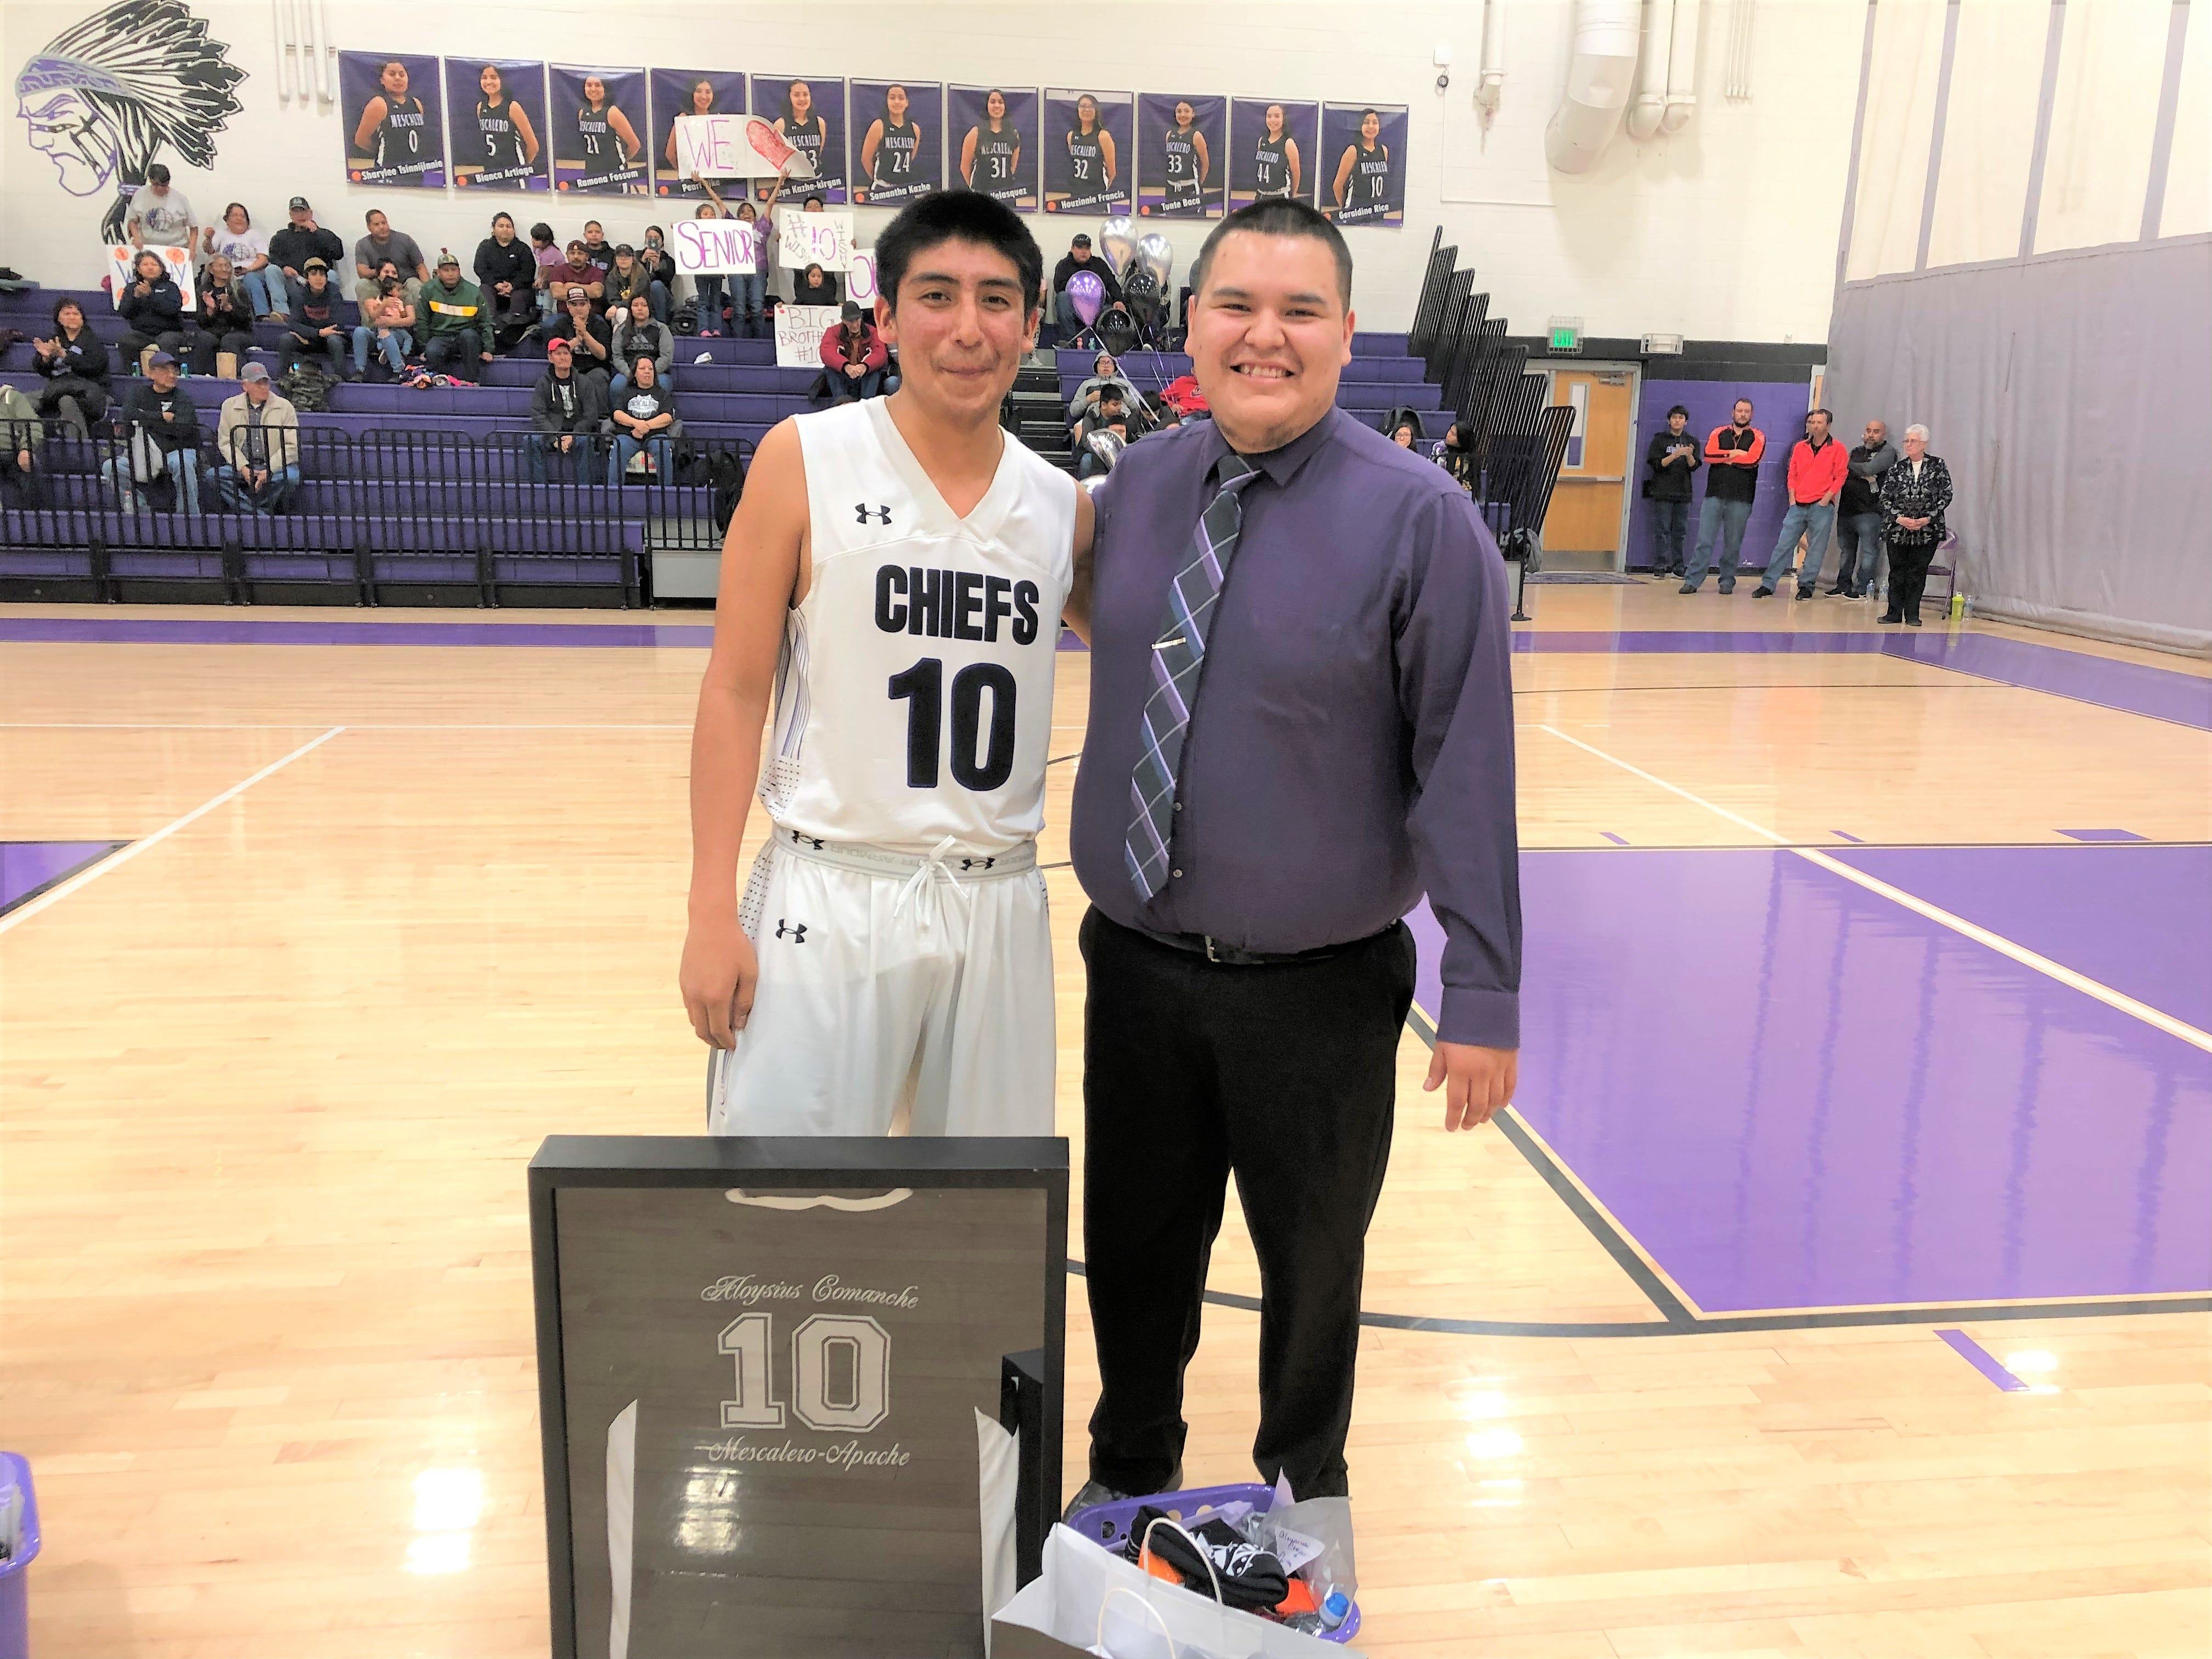 Aloysius Comanche #10 and Coach Kane show off their school spirit during a game at Mescalero Apache School. T